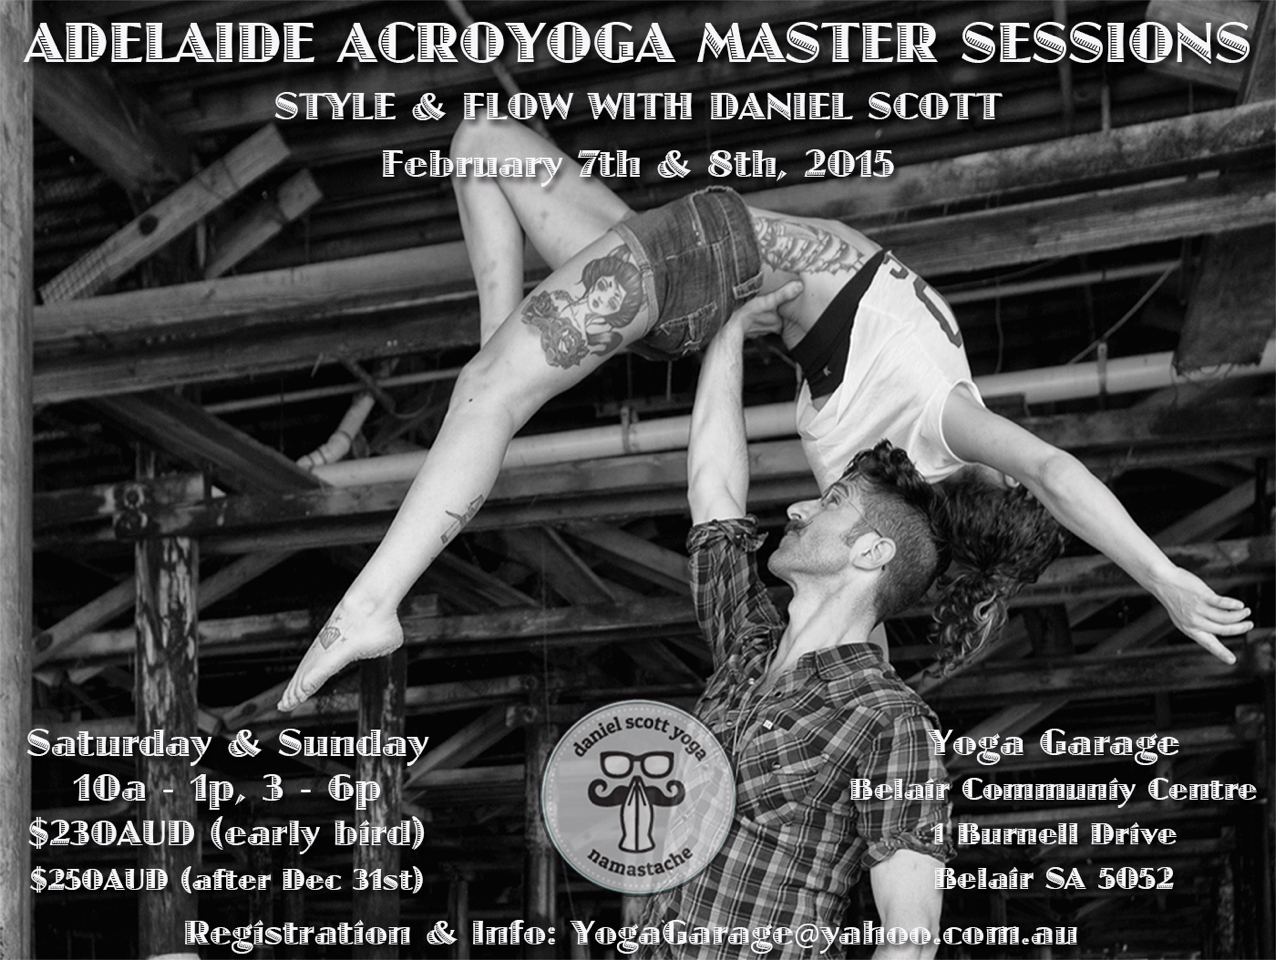 Adelaide AcroYoga Community hosts Daniel Scott at YOGA GARAGE